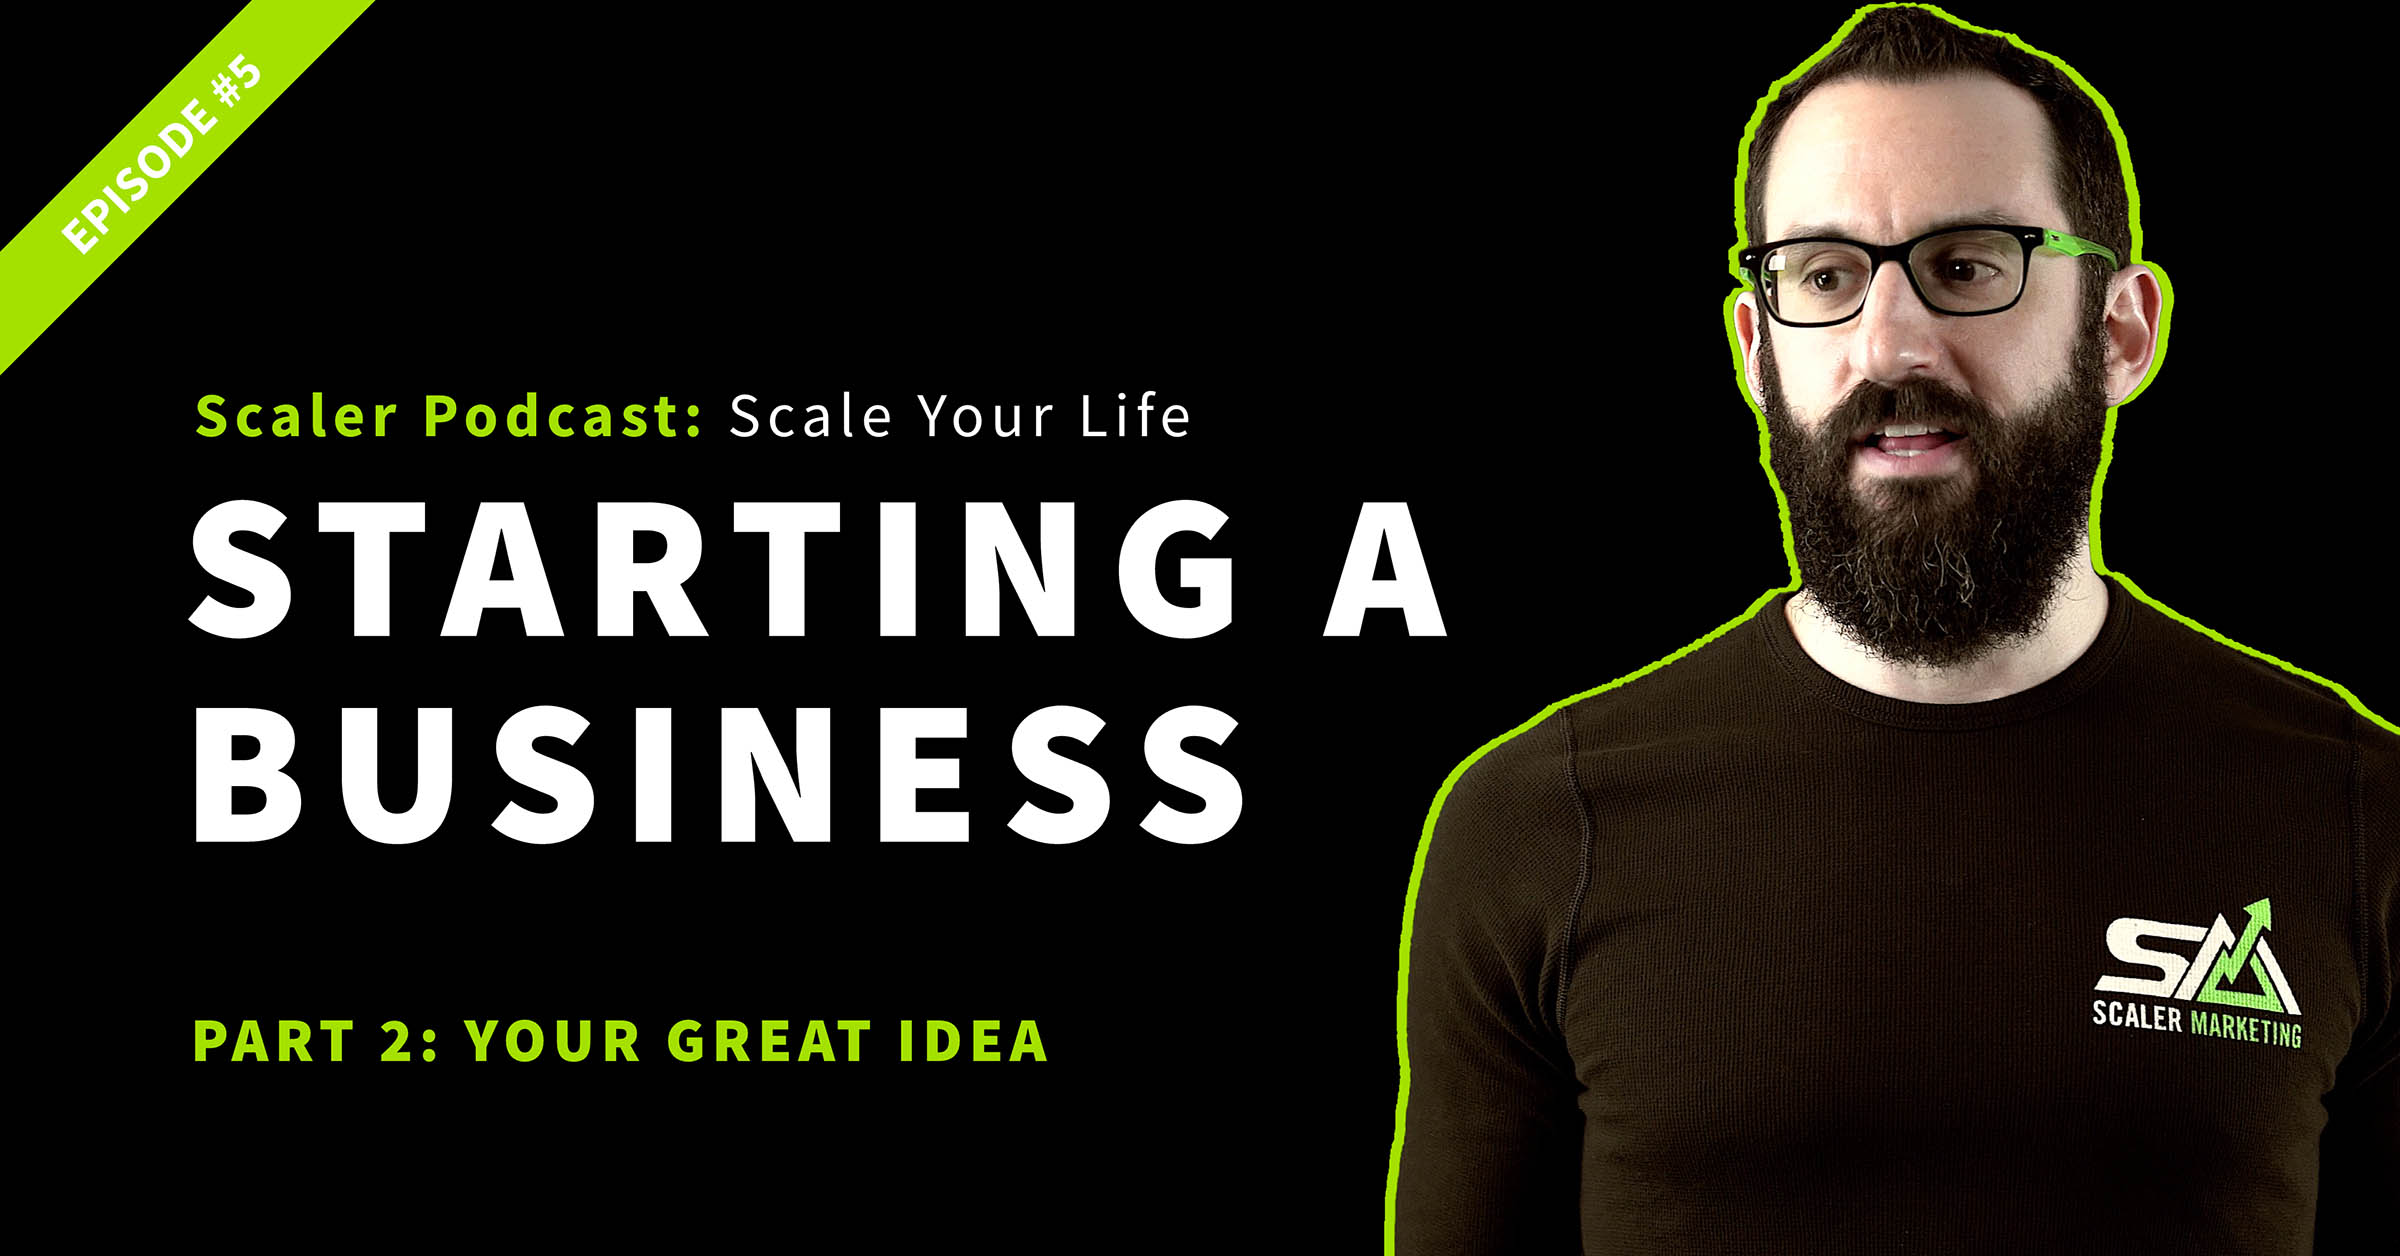 Episode 5 - Starting A Business Pt. 2 - Your Great Idea